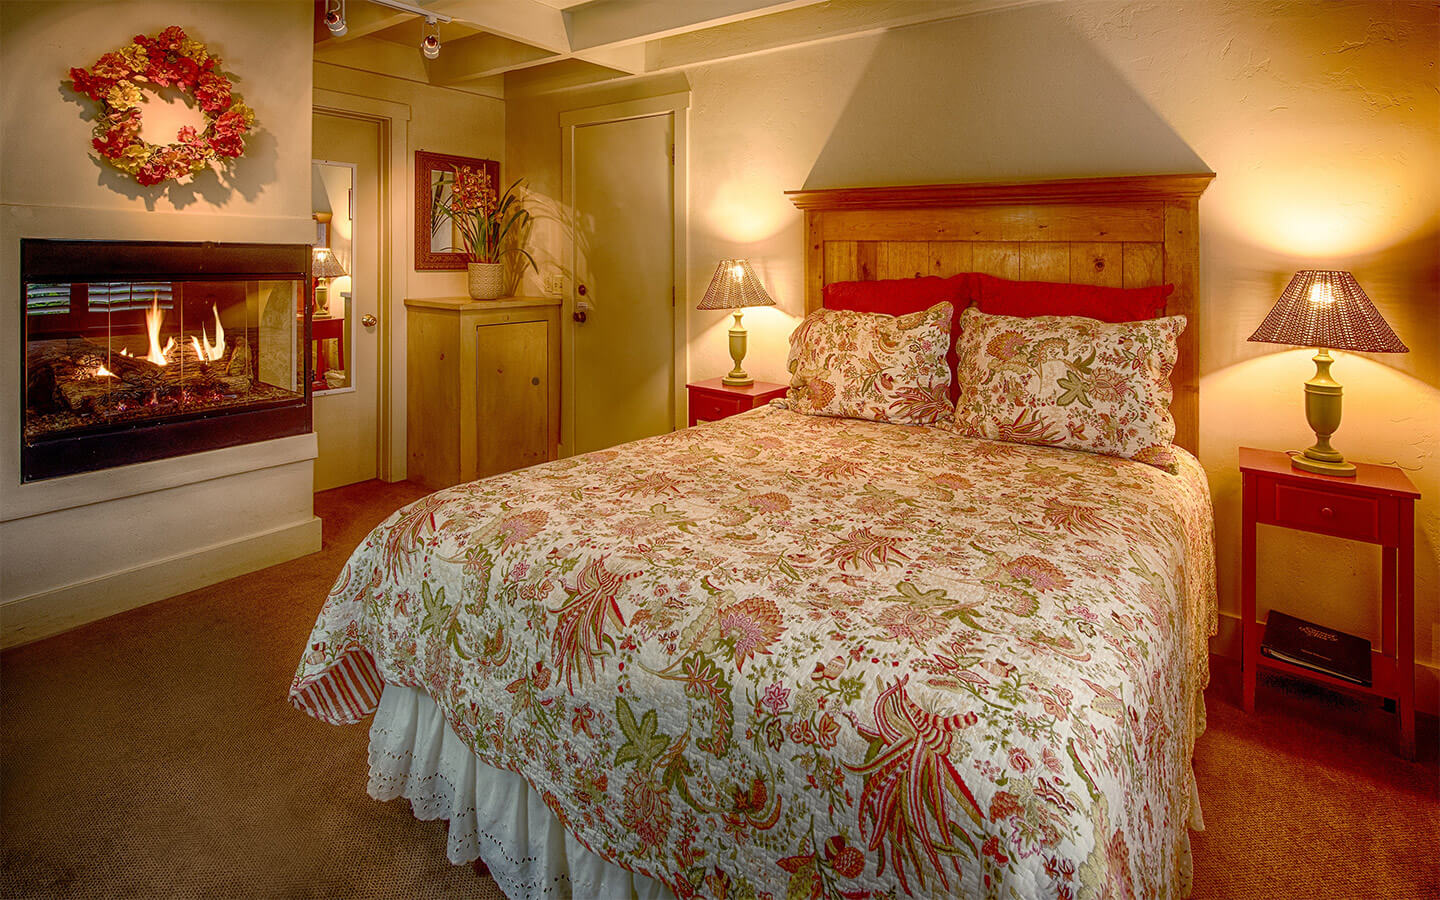 A charming guest room at our bed and breakfast in Carmel